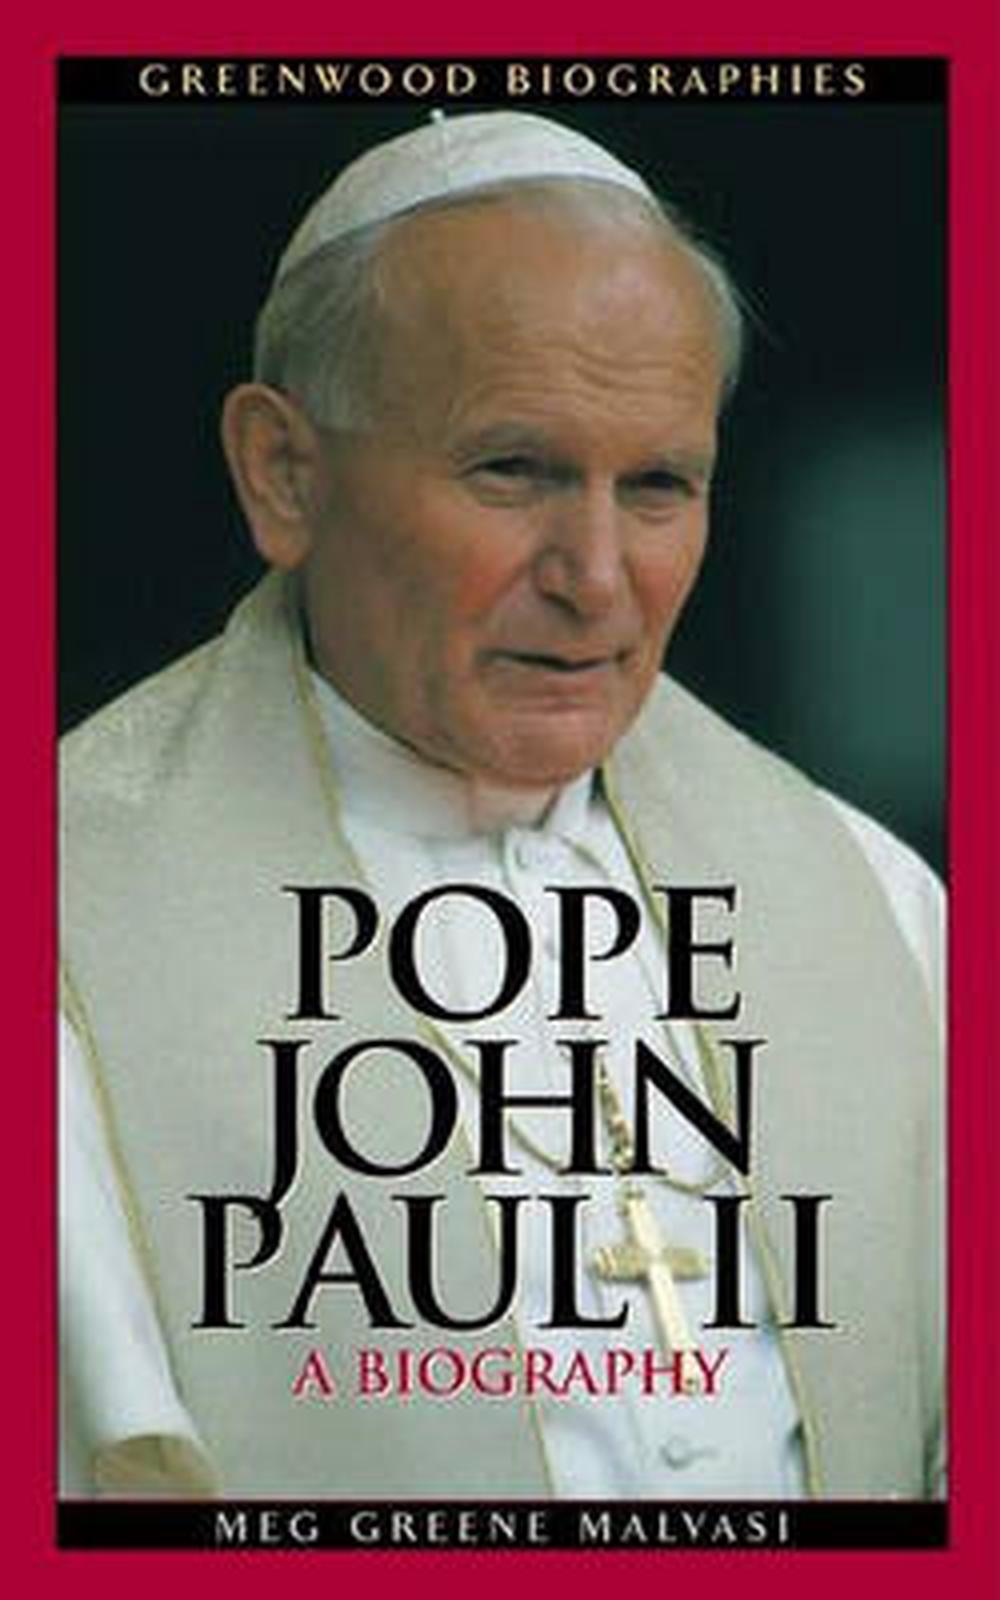 a brief biography of pope john paul Instead, enamoured of the mystical writings of saint john of the cross, he wished to join a closed order archbishop sapieha had no intention of seeing such potential locked away behind monastery walls, however, and but the brief appearance would be one of the last of pope john paul's lifetime.